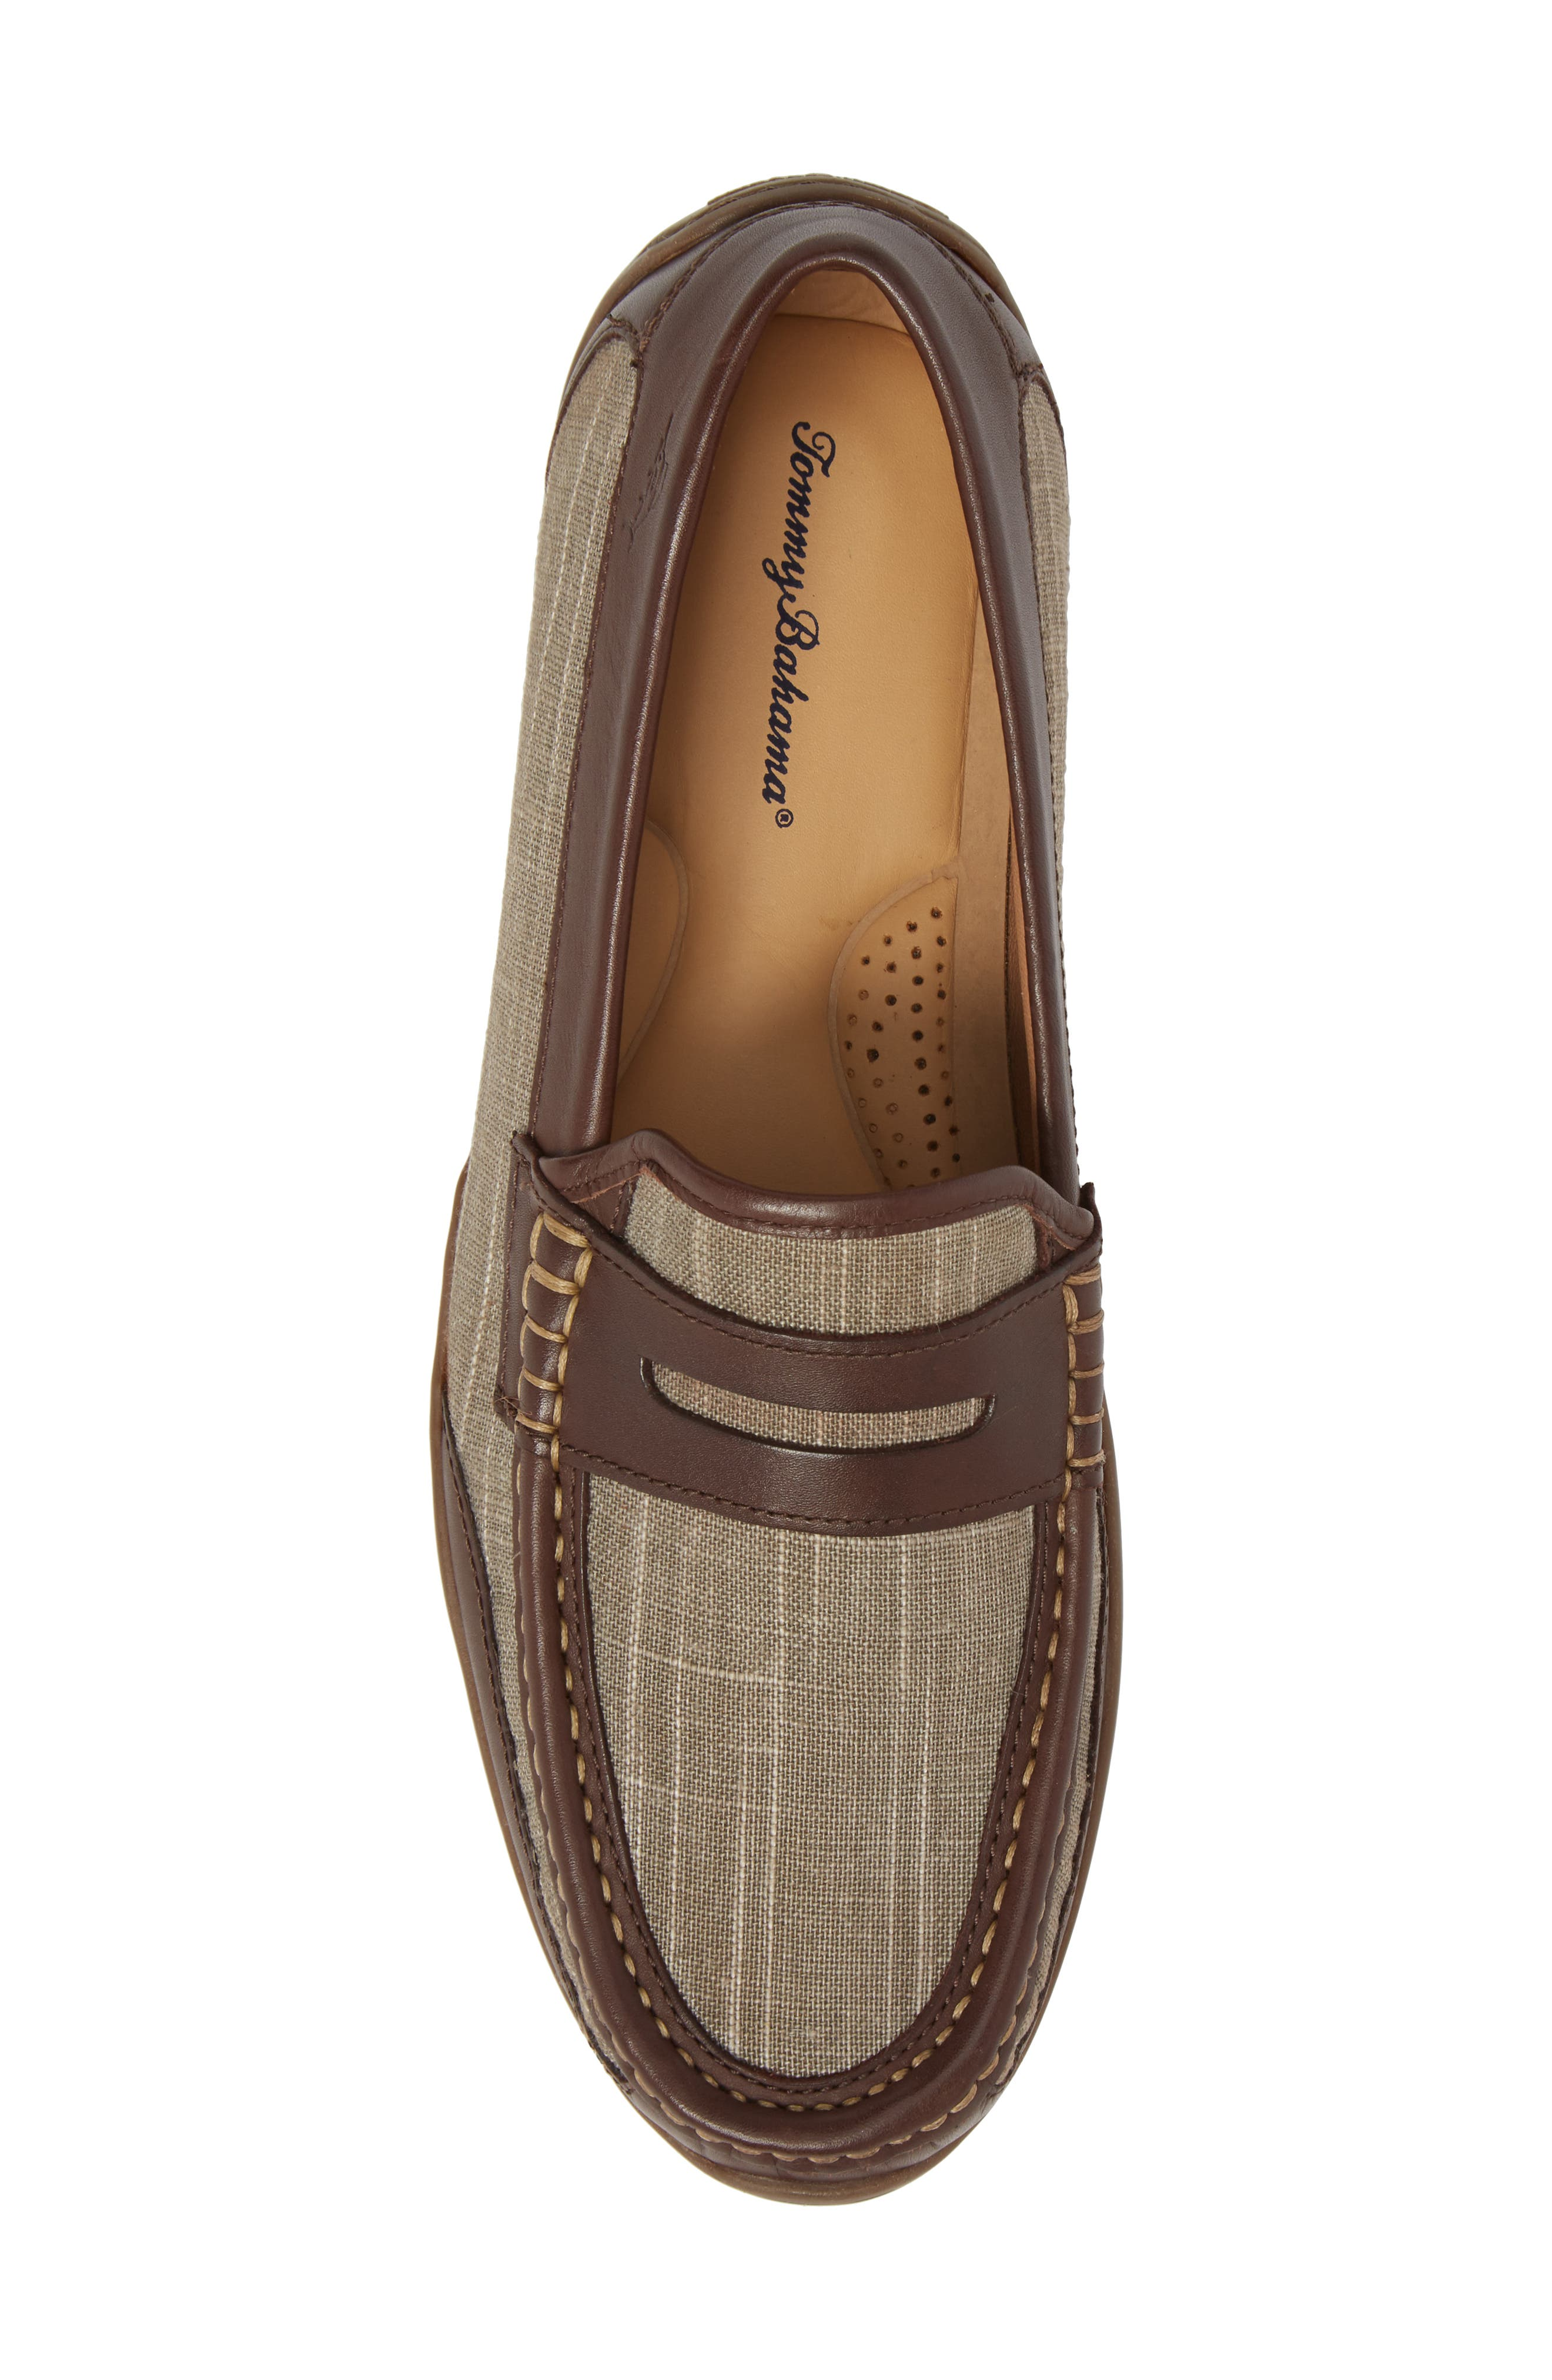 Taza Fronds Driving Shoe,                             Alternate thumbnail 5, color,                             BROWN/ OLIVE LEATHER/ LINEN